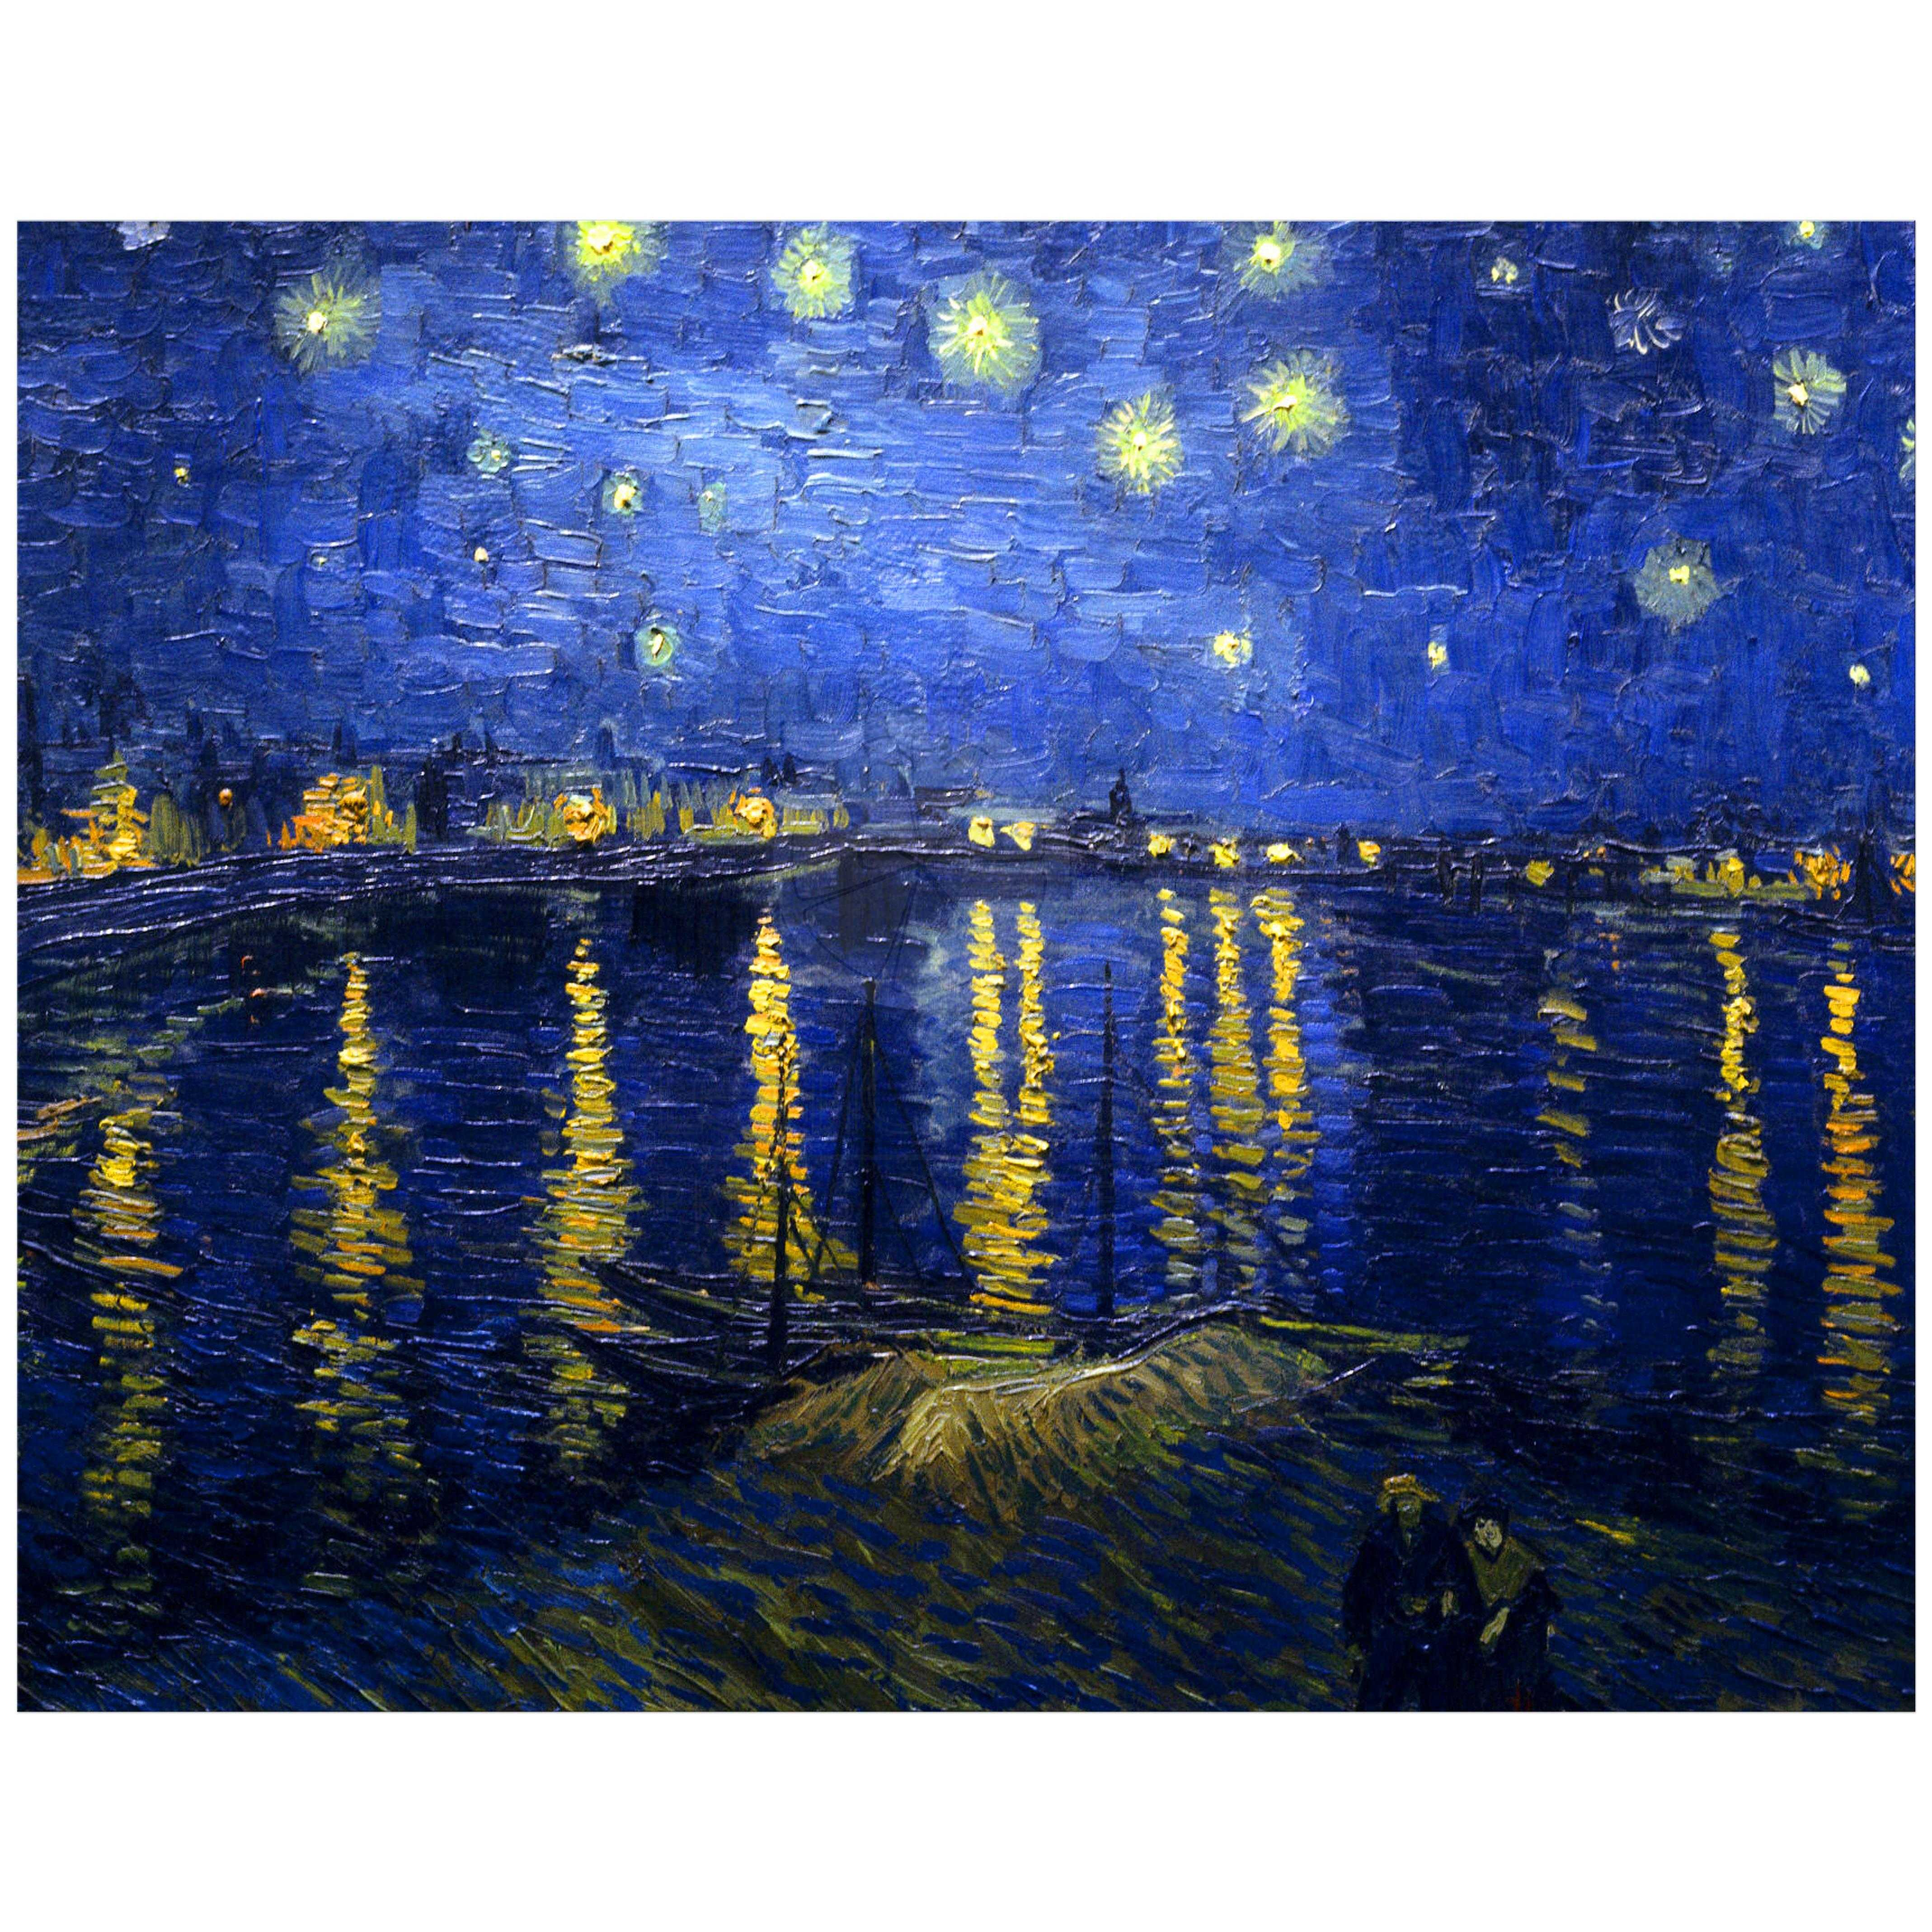 11x14 Wall Art Featuring Van Goghs Starry Night Over The Rhone